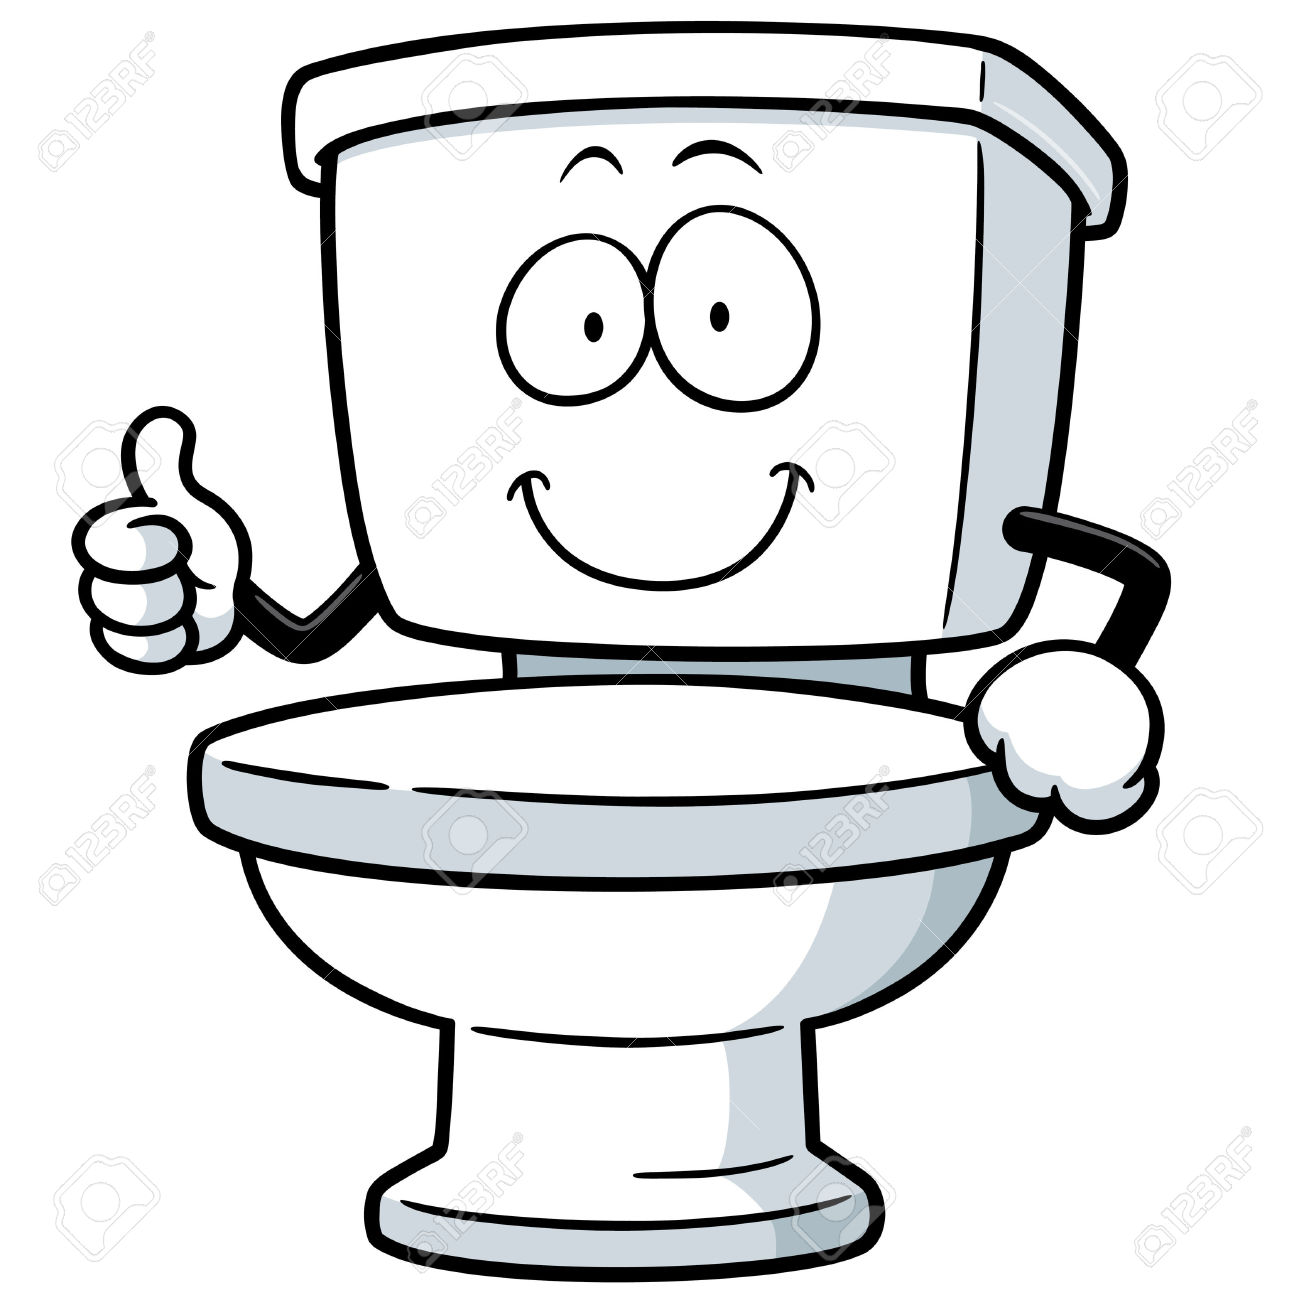 Toilet clipart funny #7